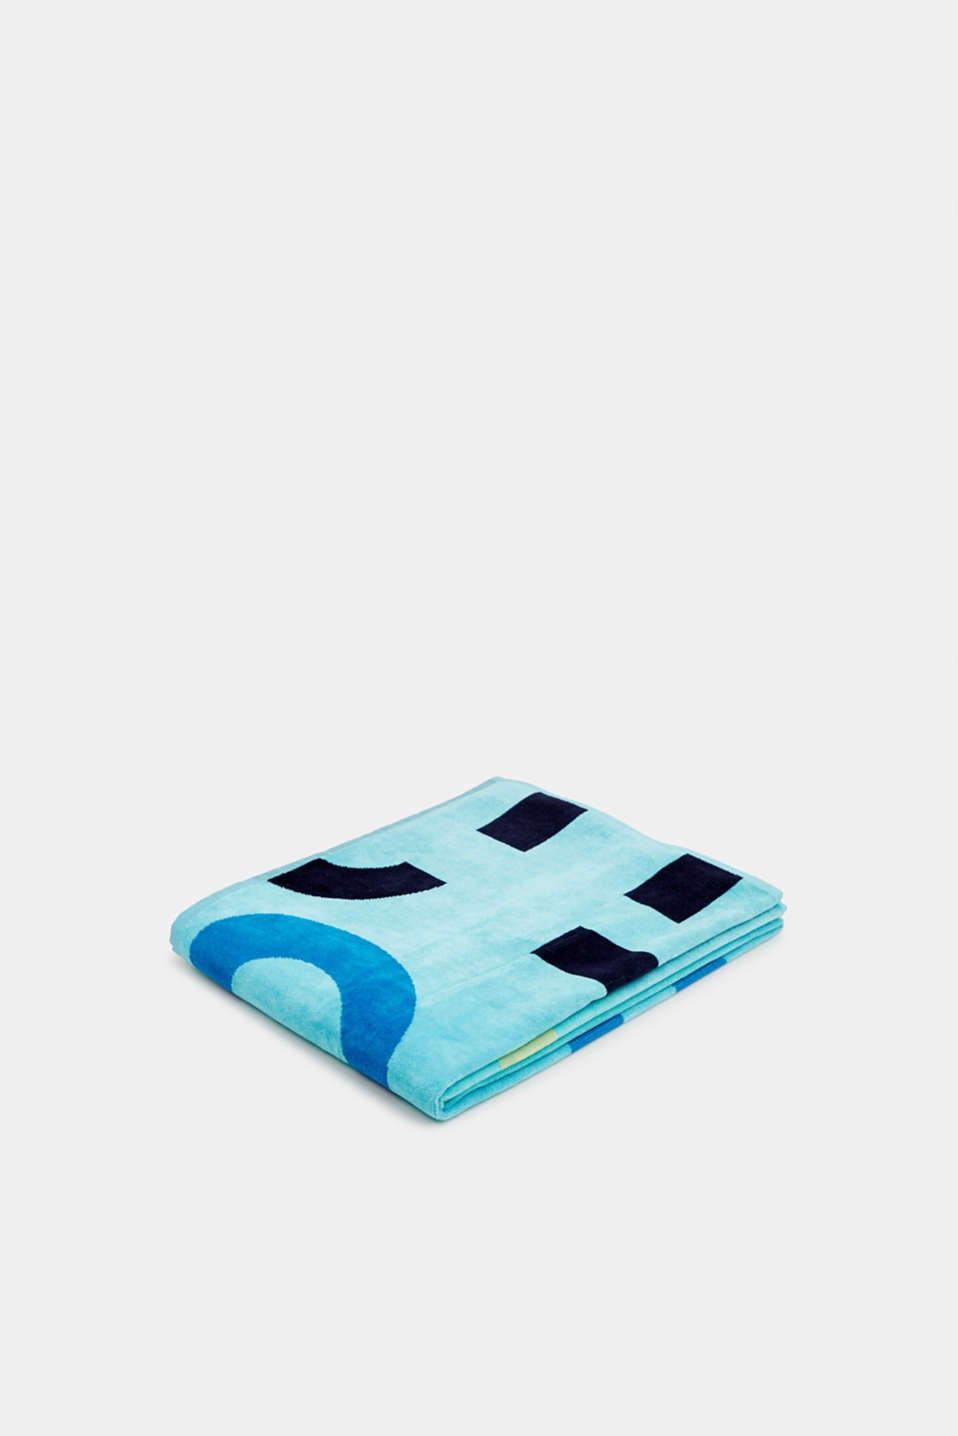 Esprit - Towel with intarsia logos, 100% cotton